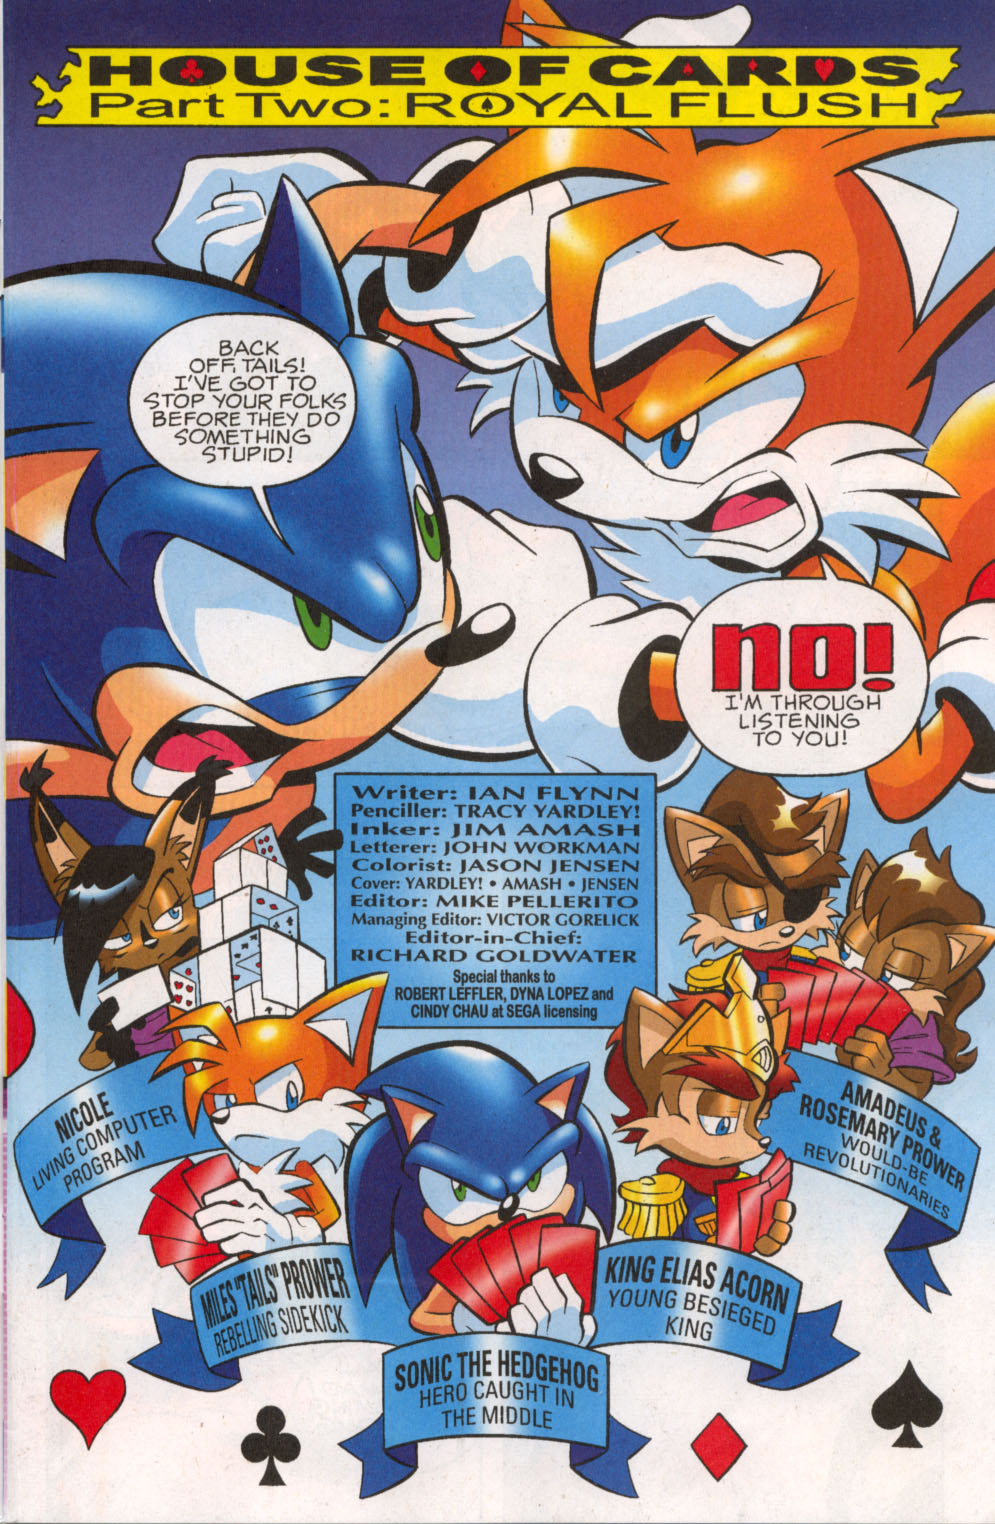 Sonic The Hedgehog (1993) #179 - Read Sonic The Hedgehog